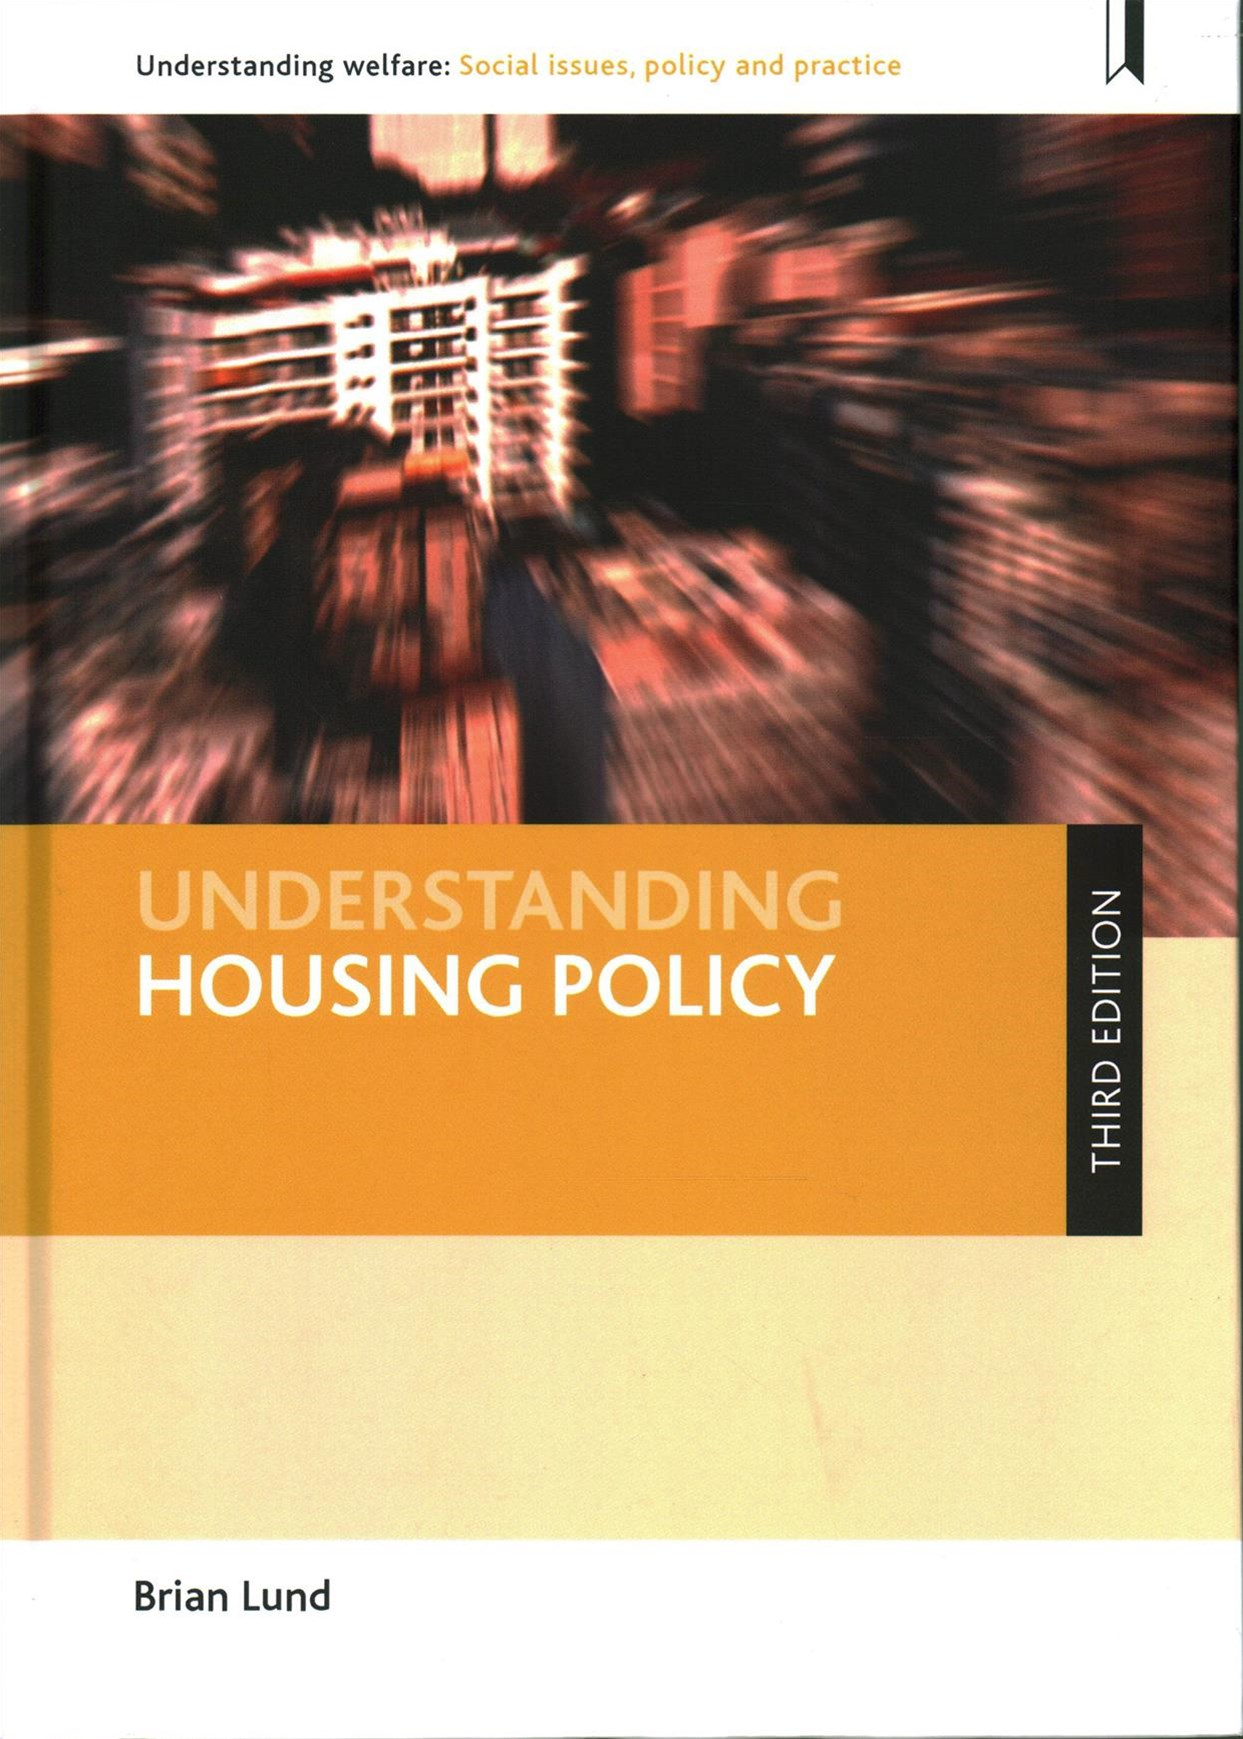 Understanding housing policy